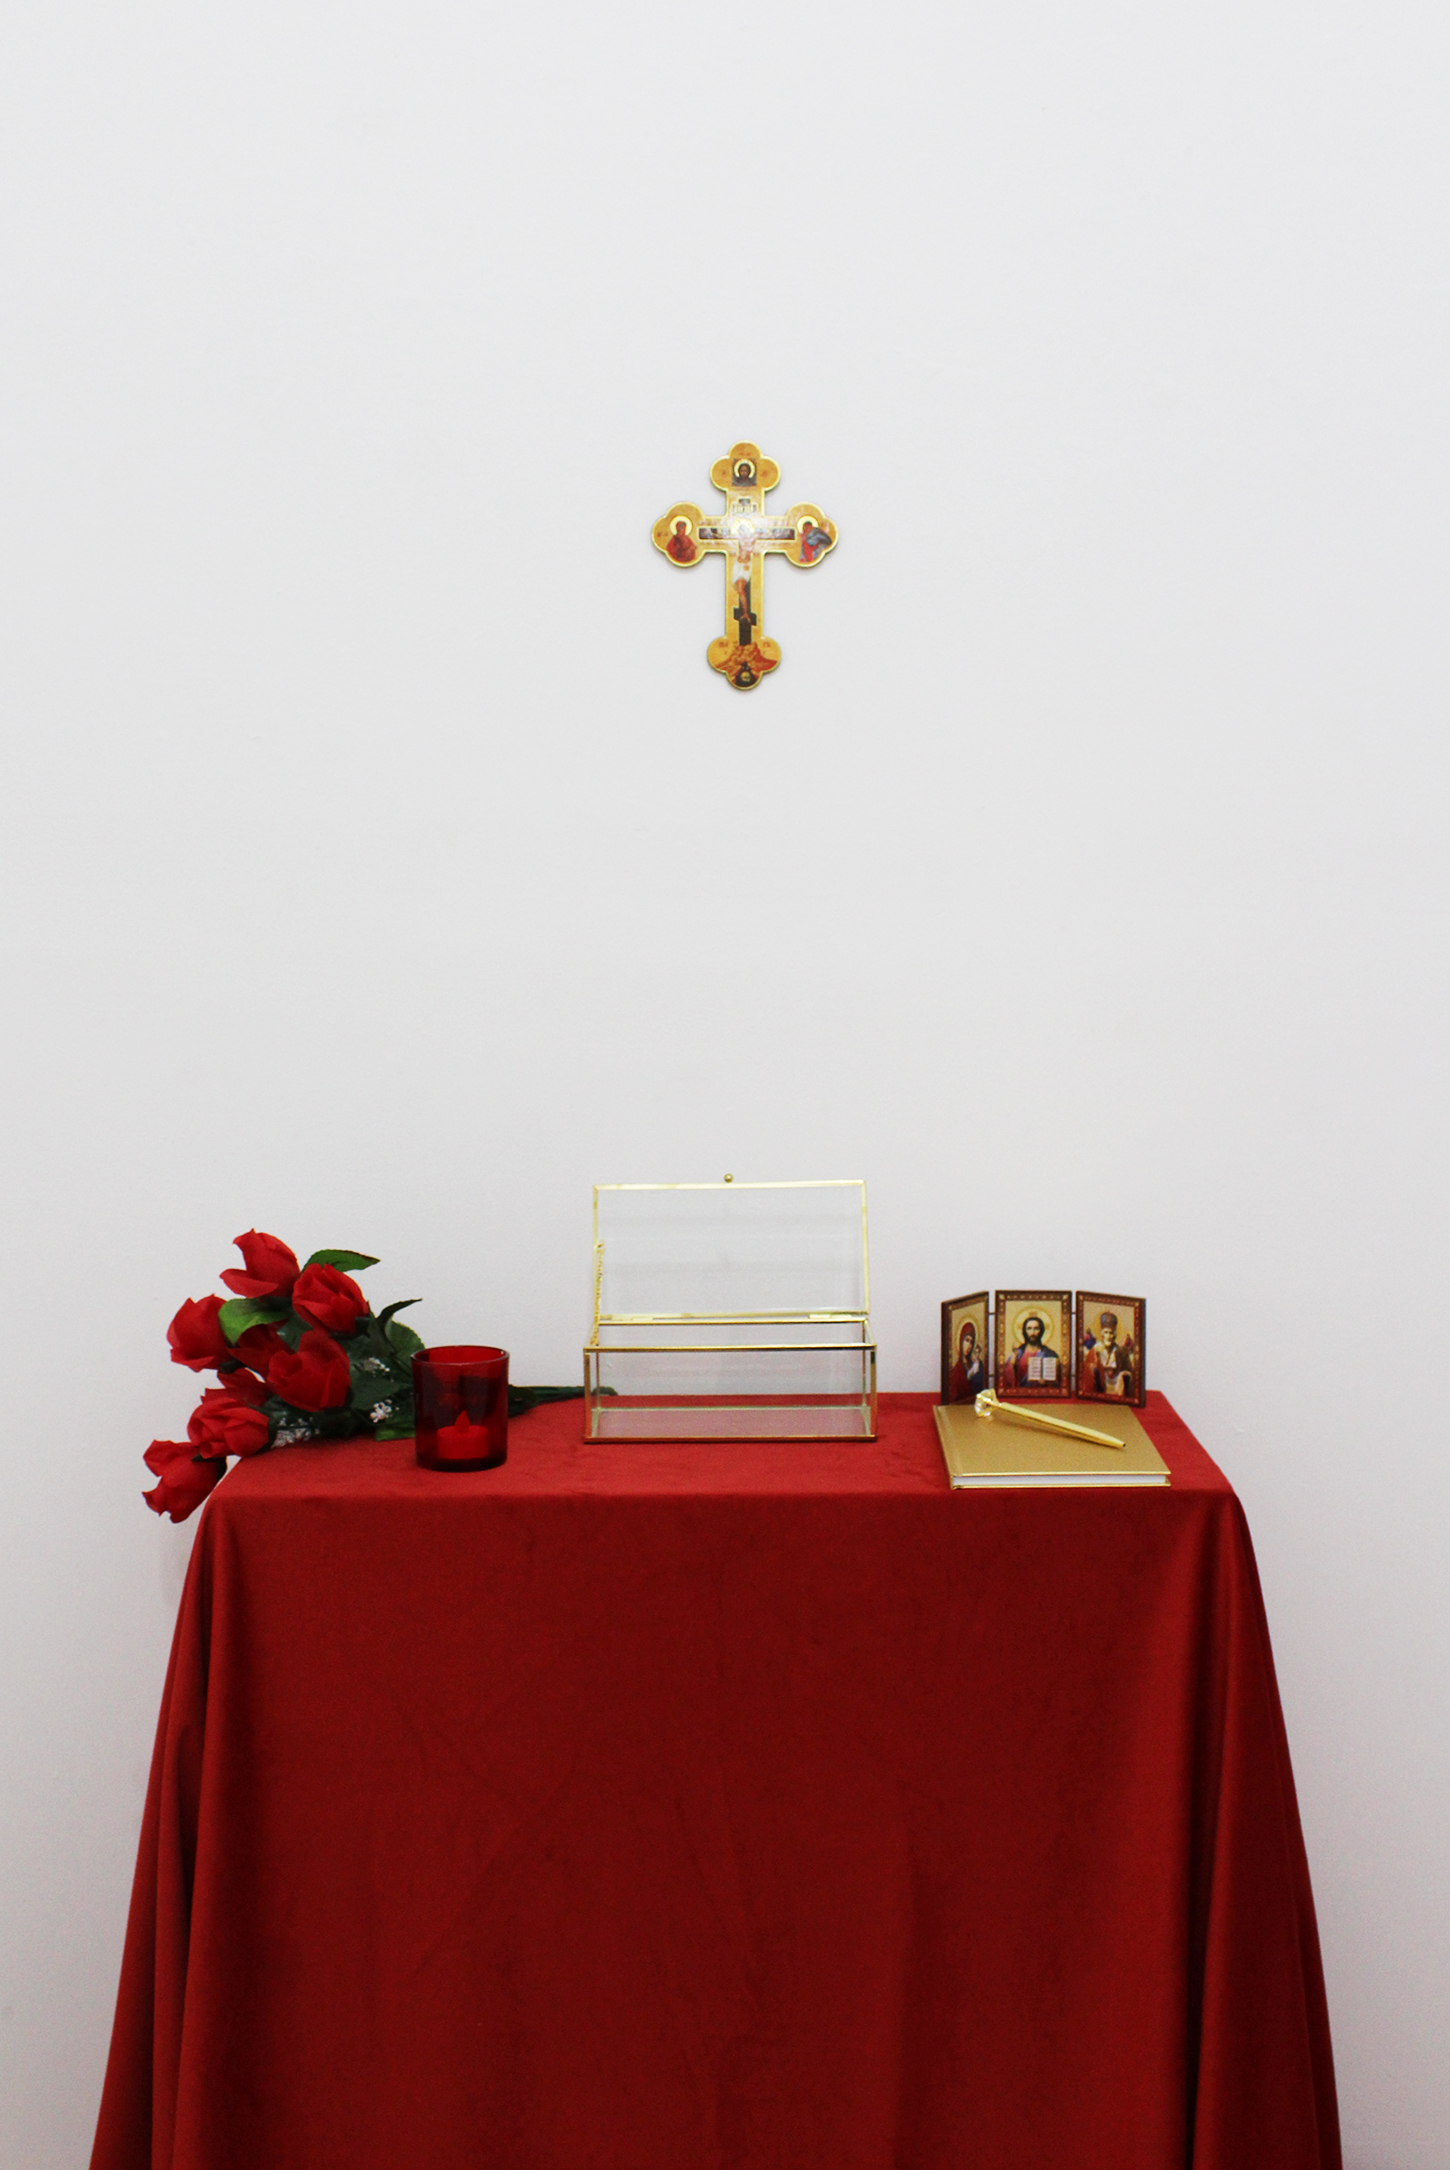 Copy of Ivana Jovanović, Altar, 2019, mixed media installation on plinth.